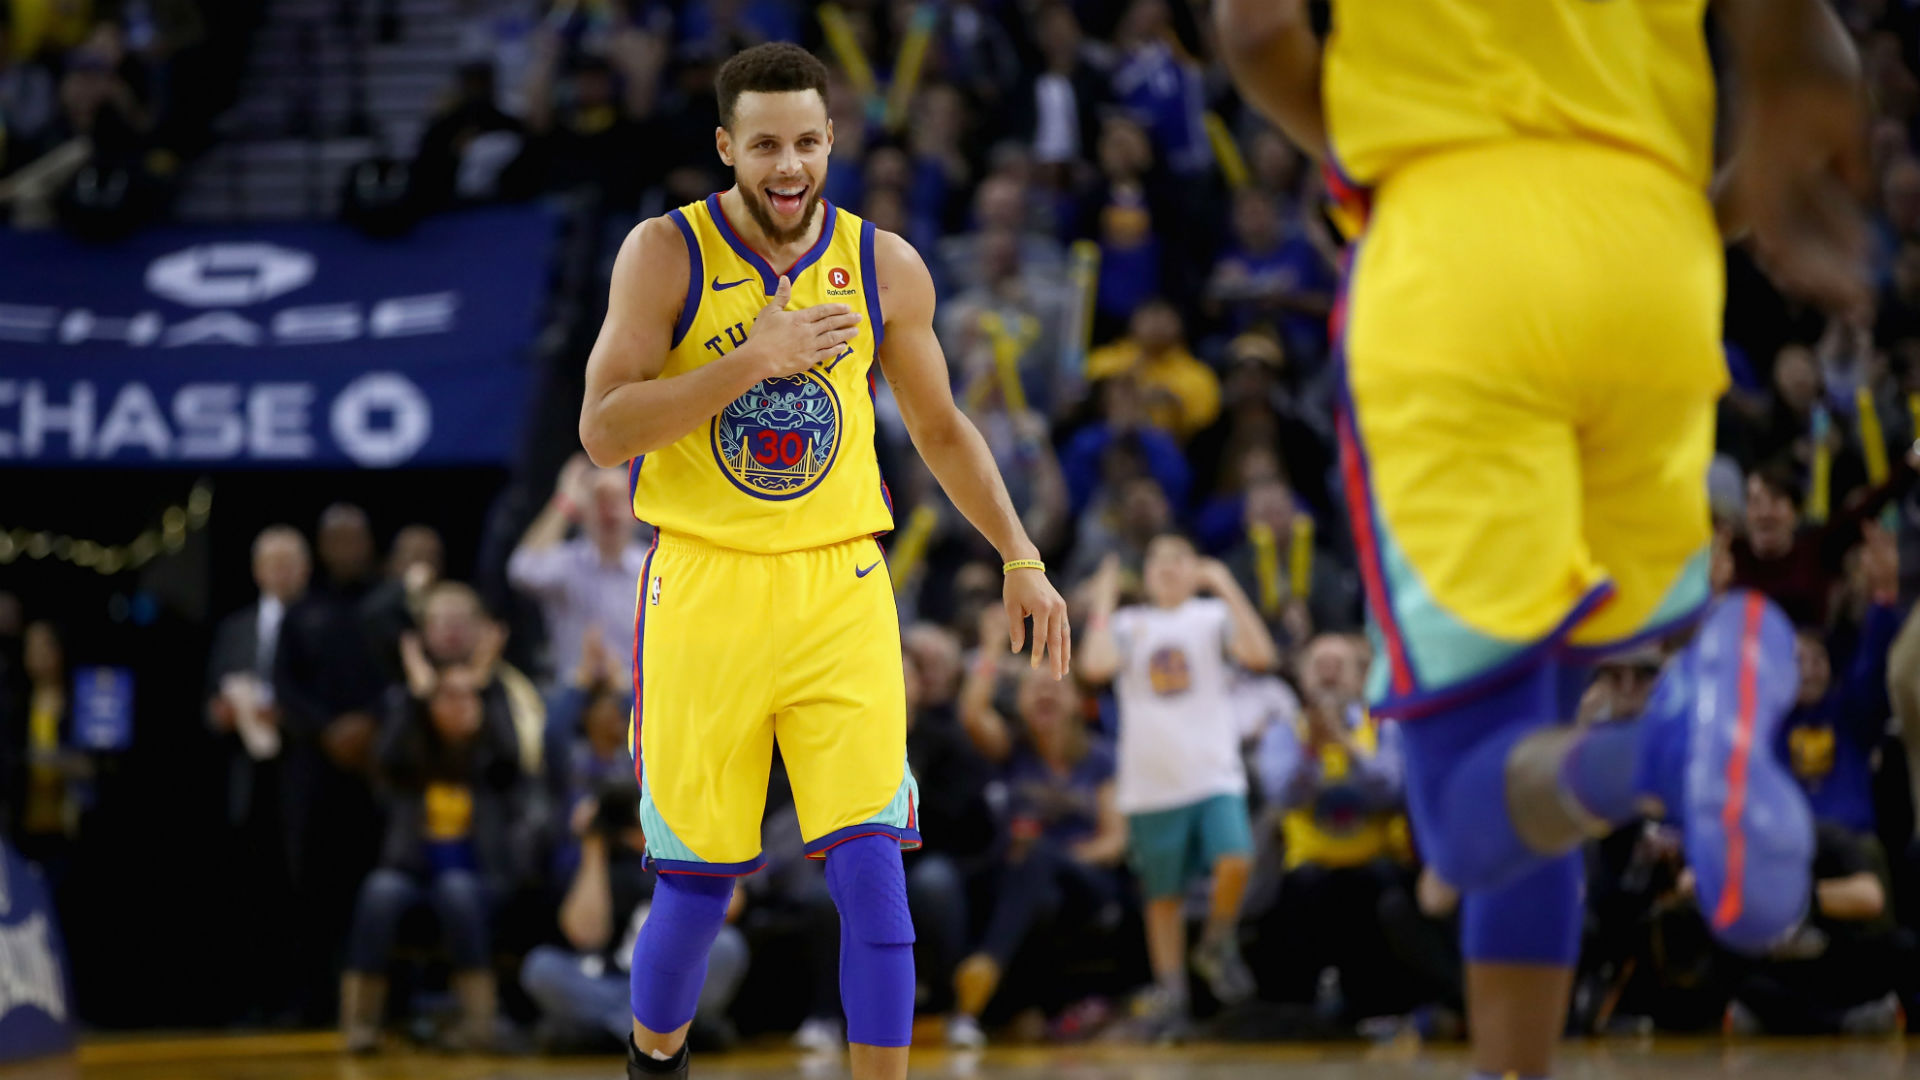 Spurs vs. Warriors, Game 1 recap, reactions: Outgunned in playoff opener